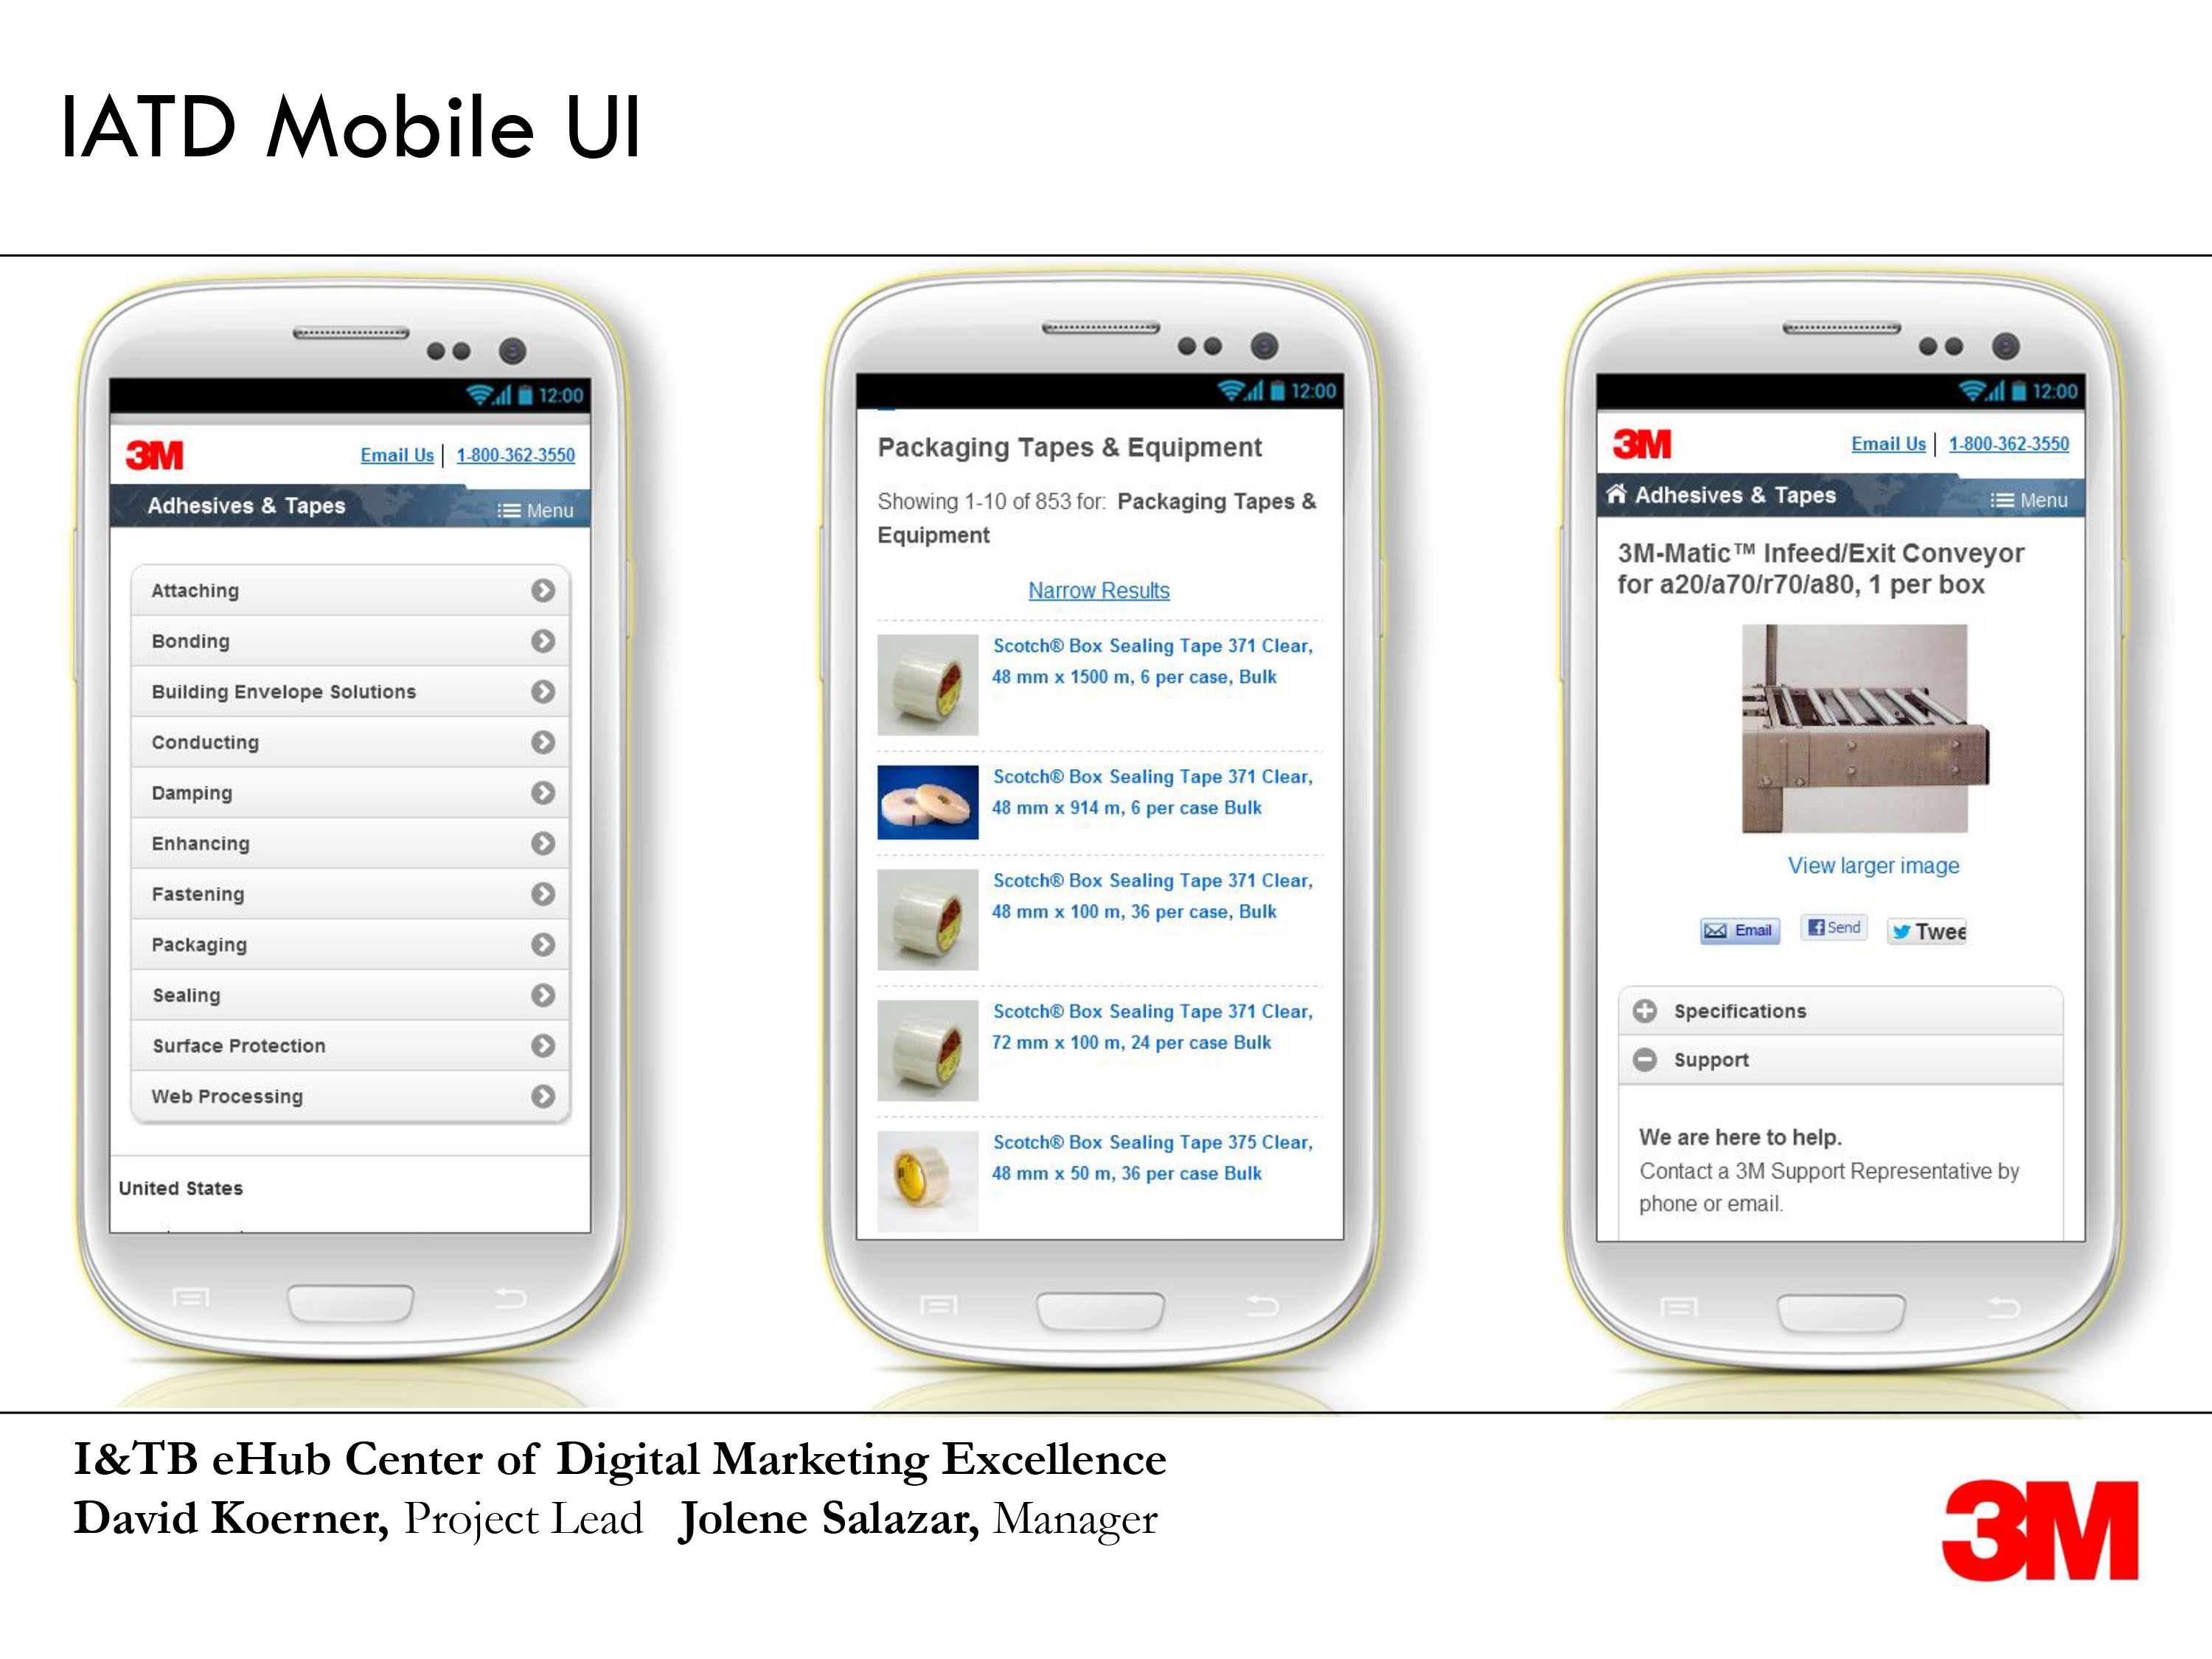 IATD mobile product screenshots on white phones